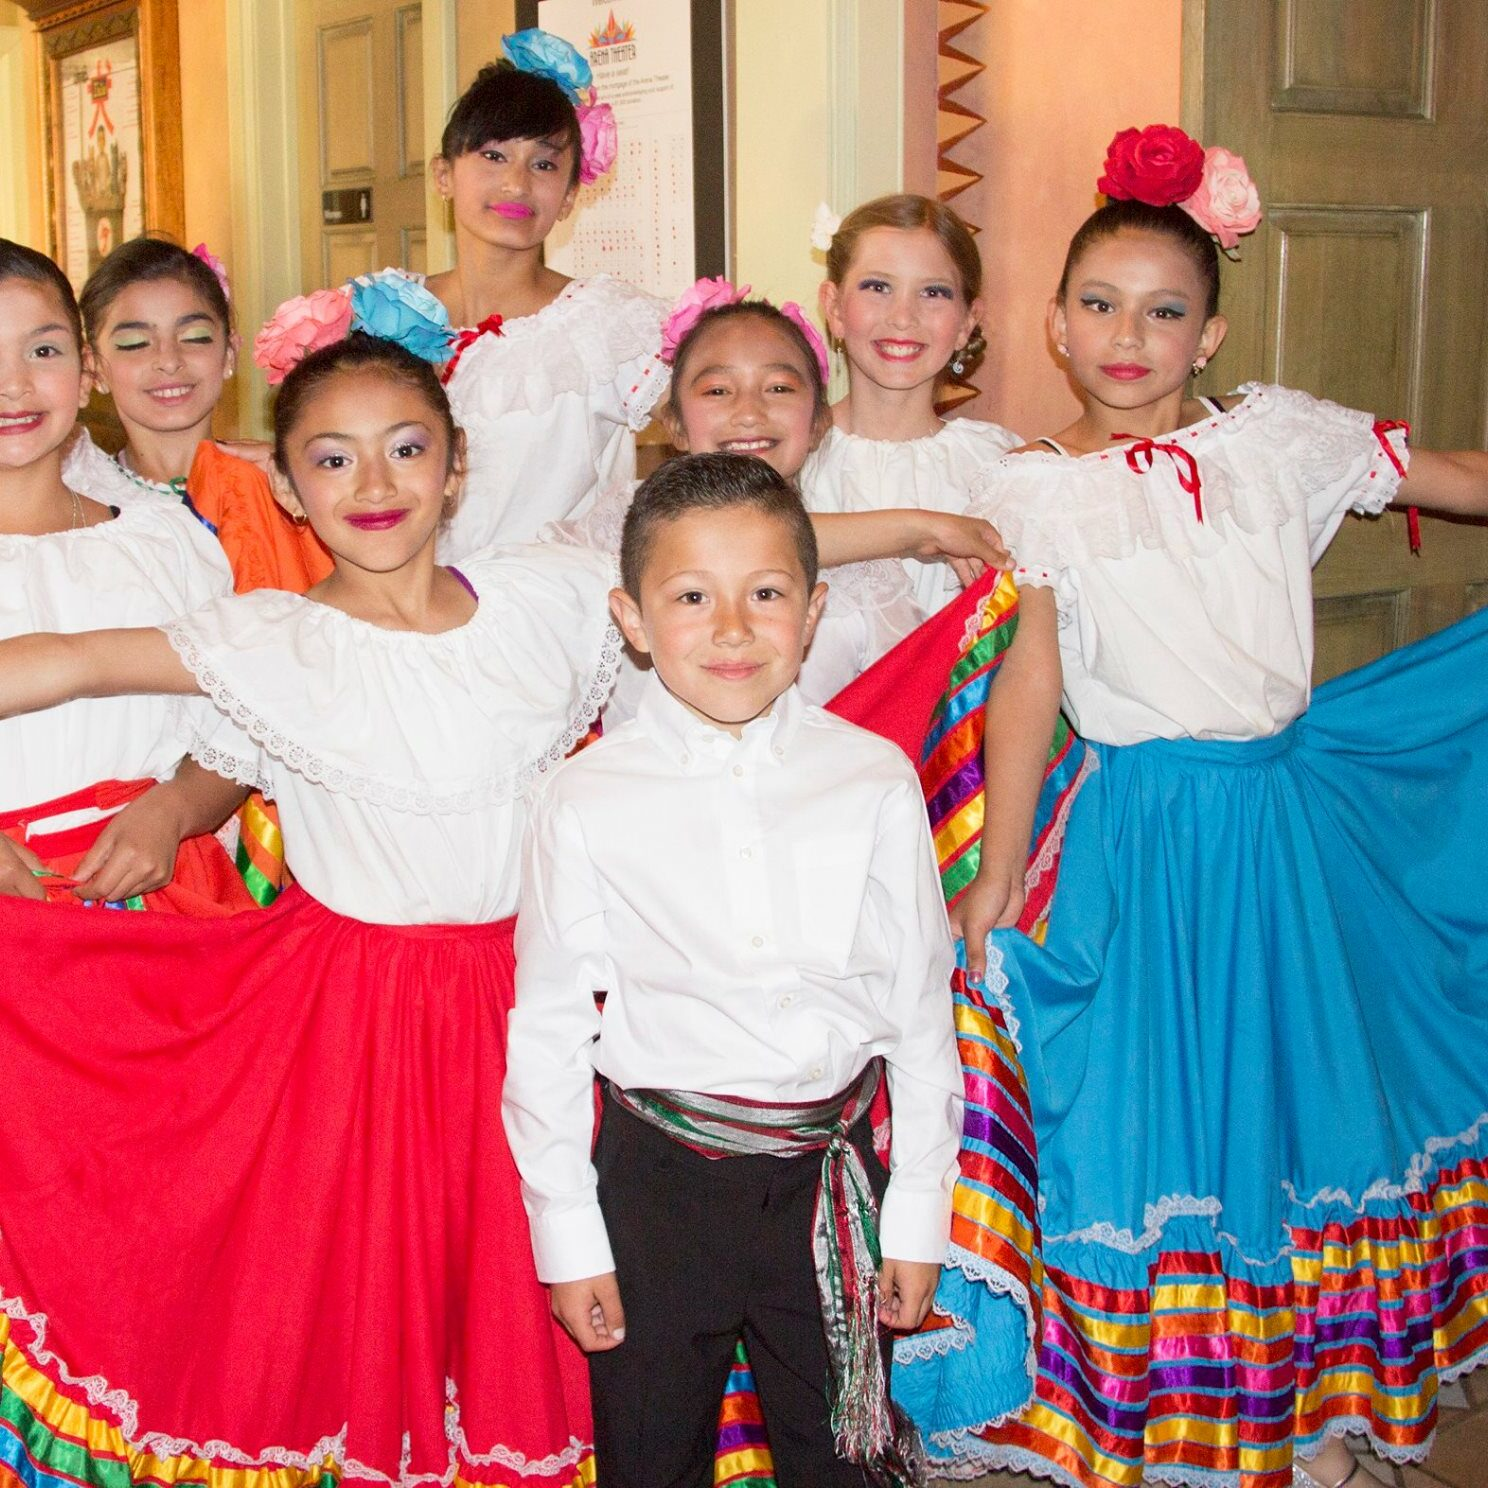 Young Folkloric Dancers at Arena Theater